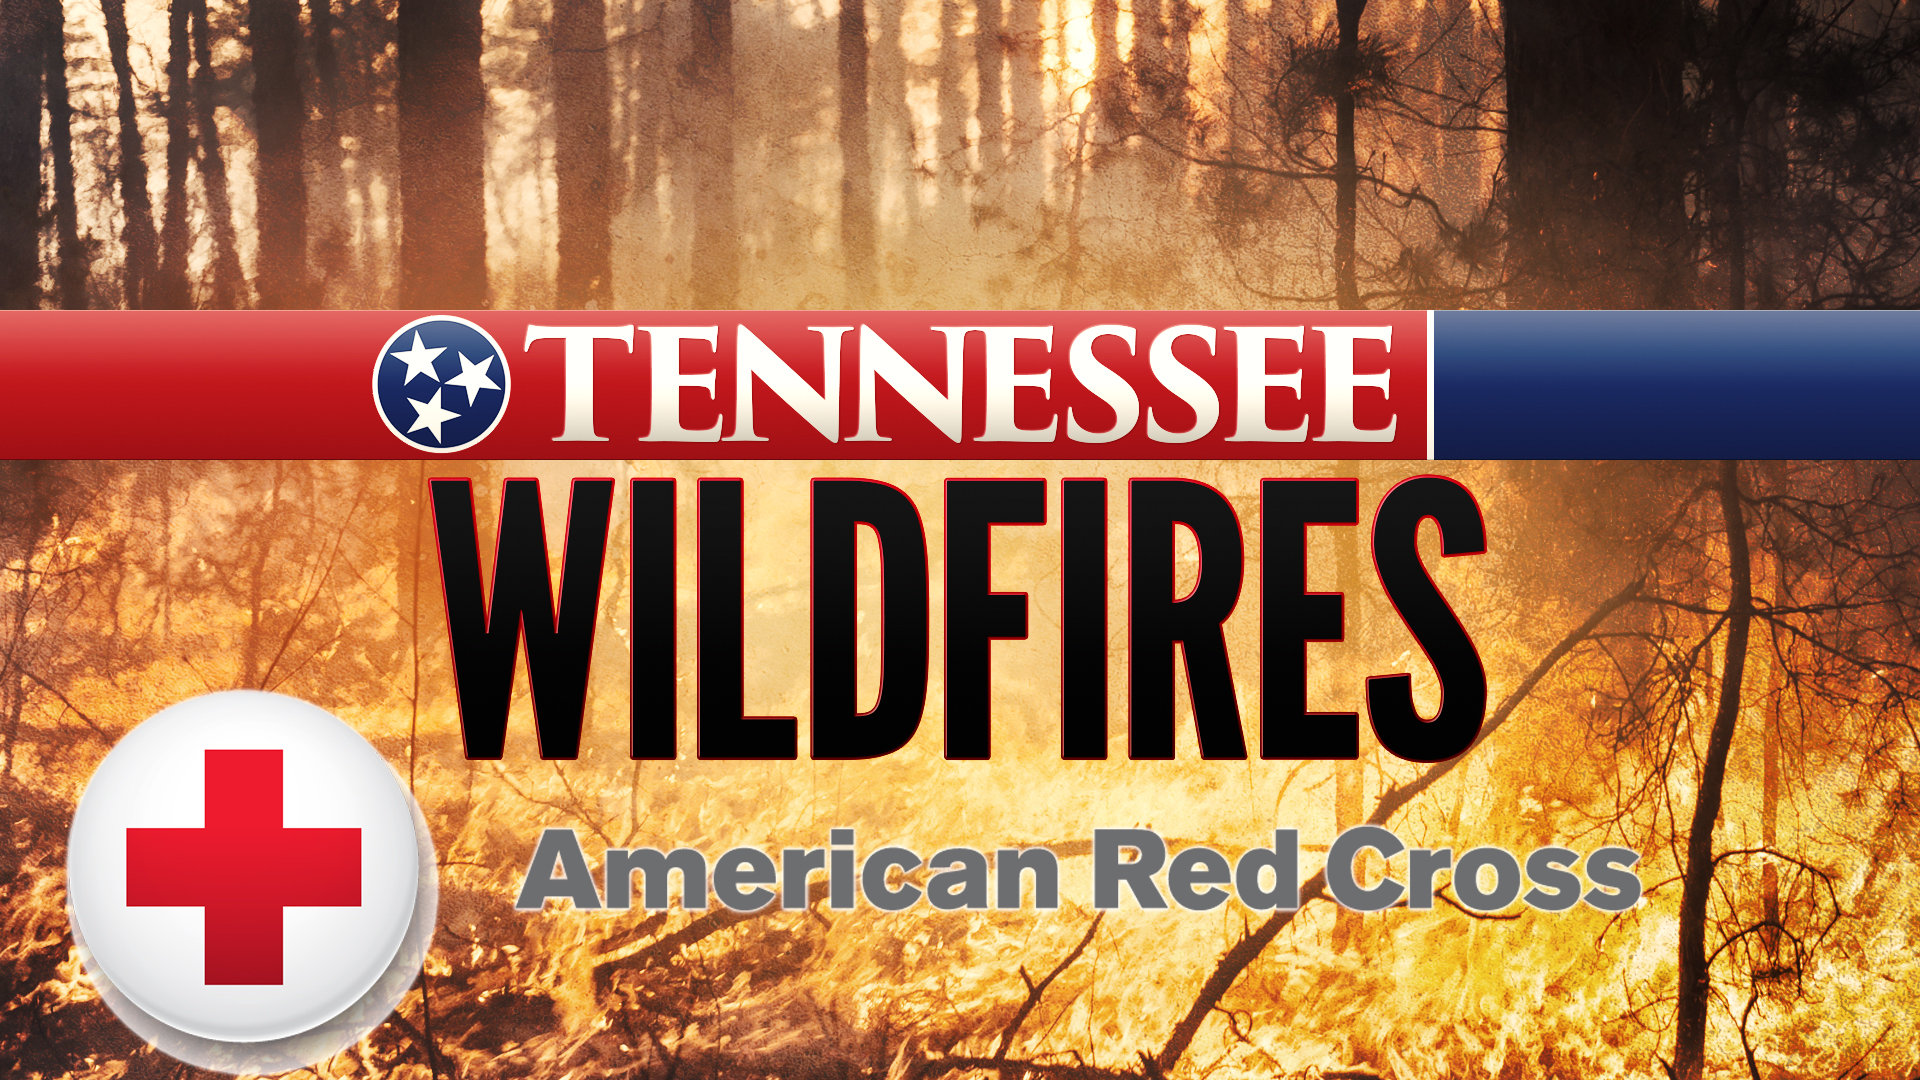 tennessee-wildfires-red-cross_199630